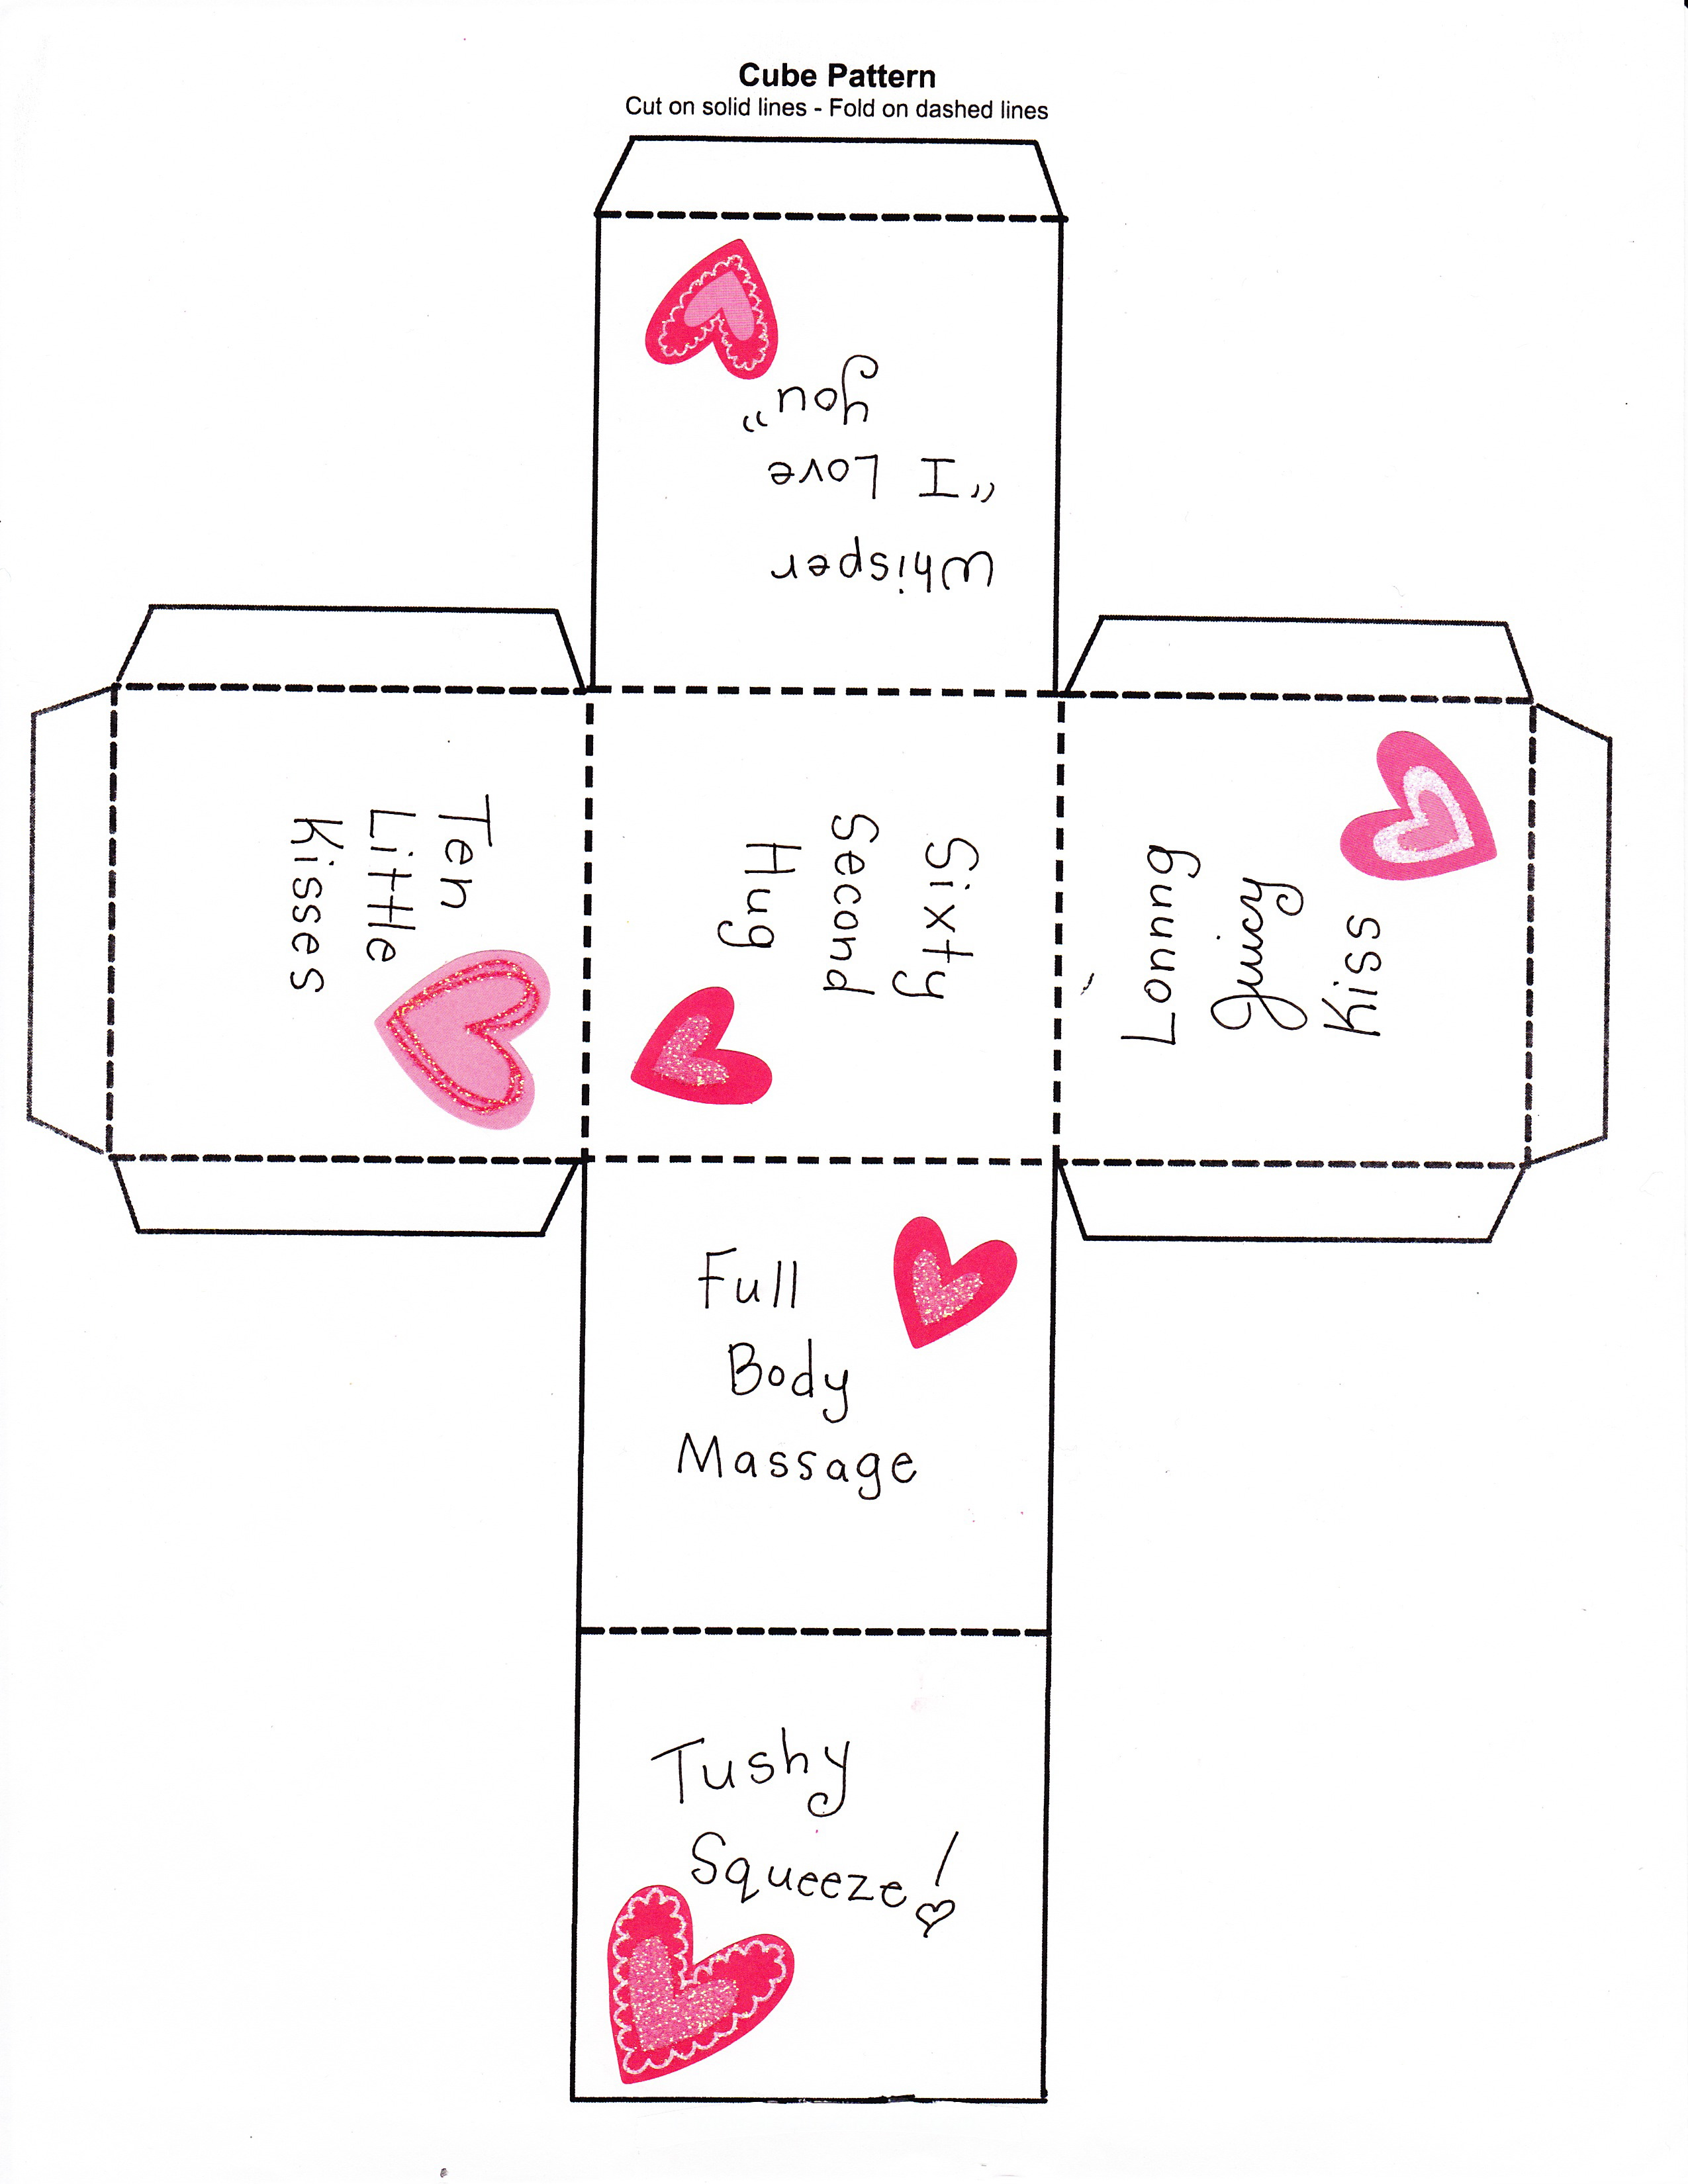 The 25 Days of Love Fun - Day 5: Love Dice - Happy Home Fairy